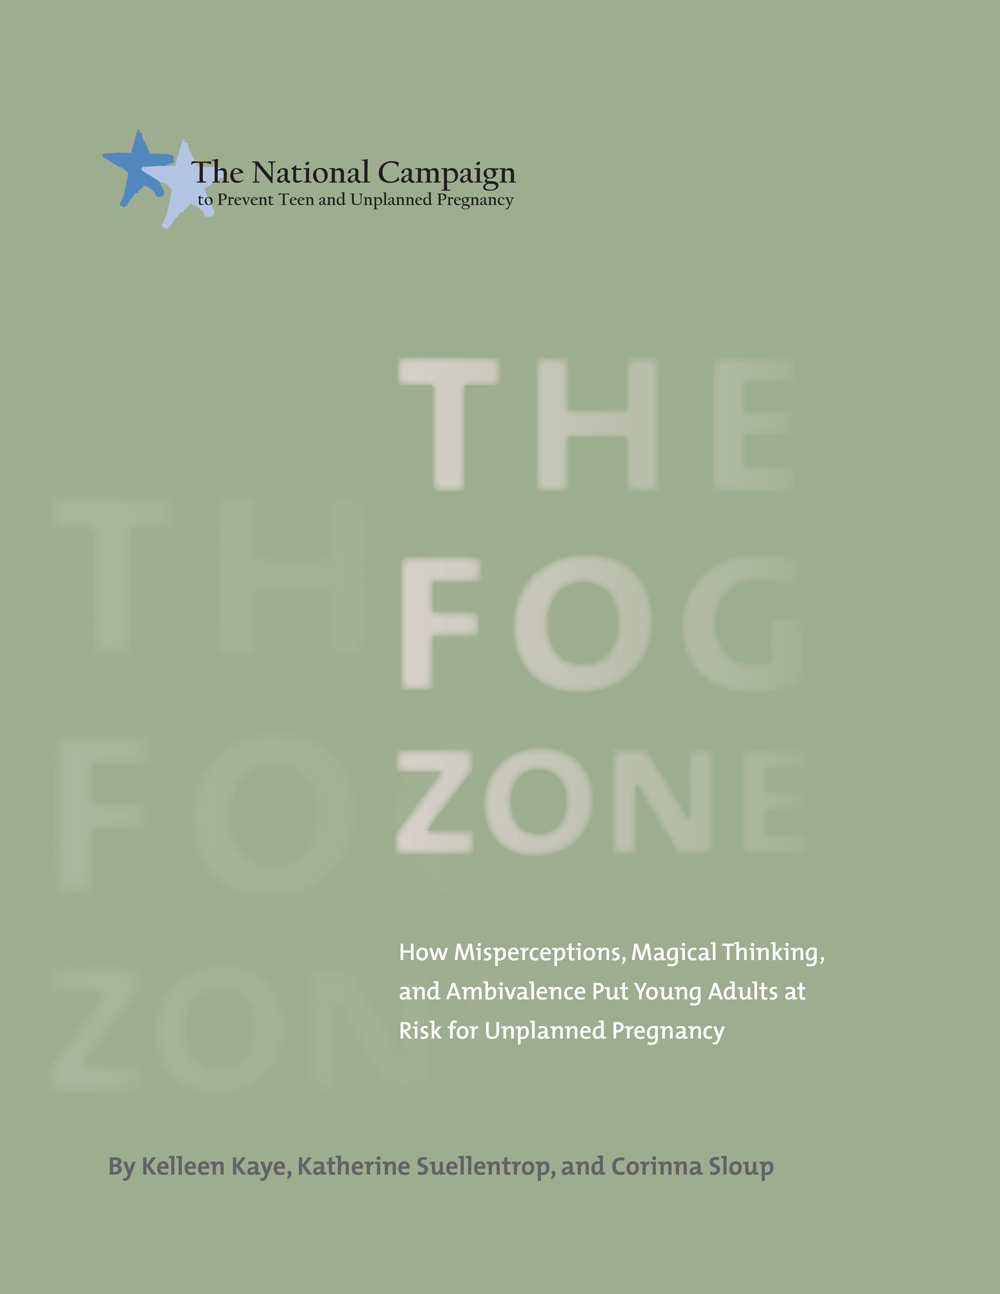 The Fog Zone: How Misperceptions, Magical Thinking, and Ambivalence Put Young Adults at Risk for Unplanned Pregnancy—Full Report